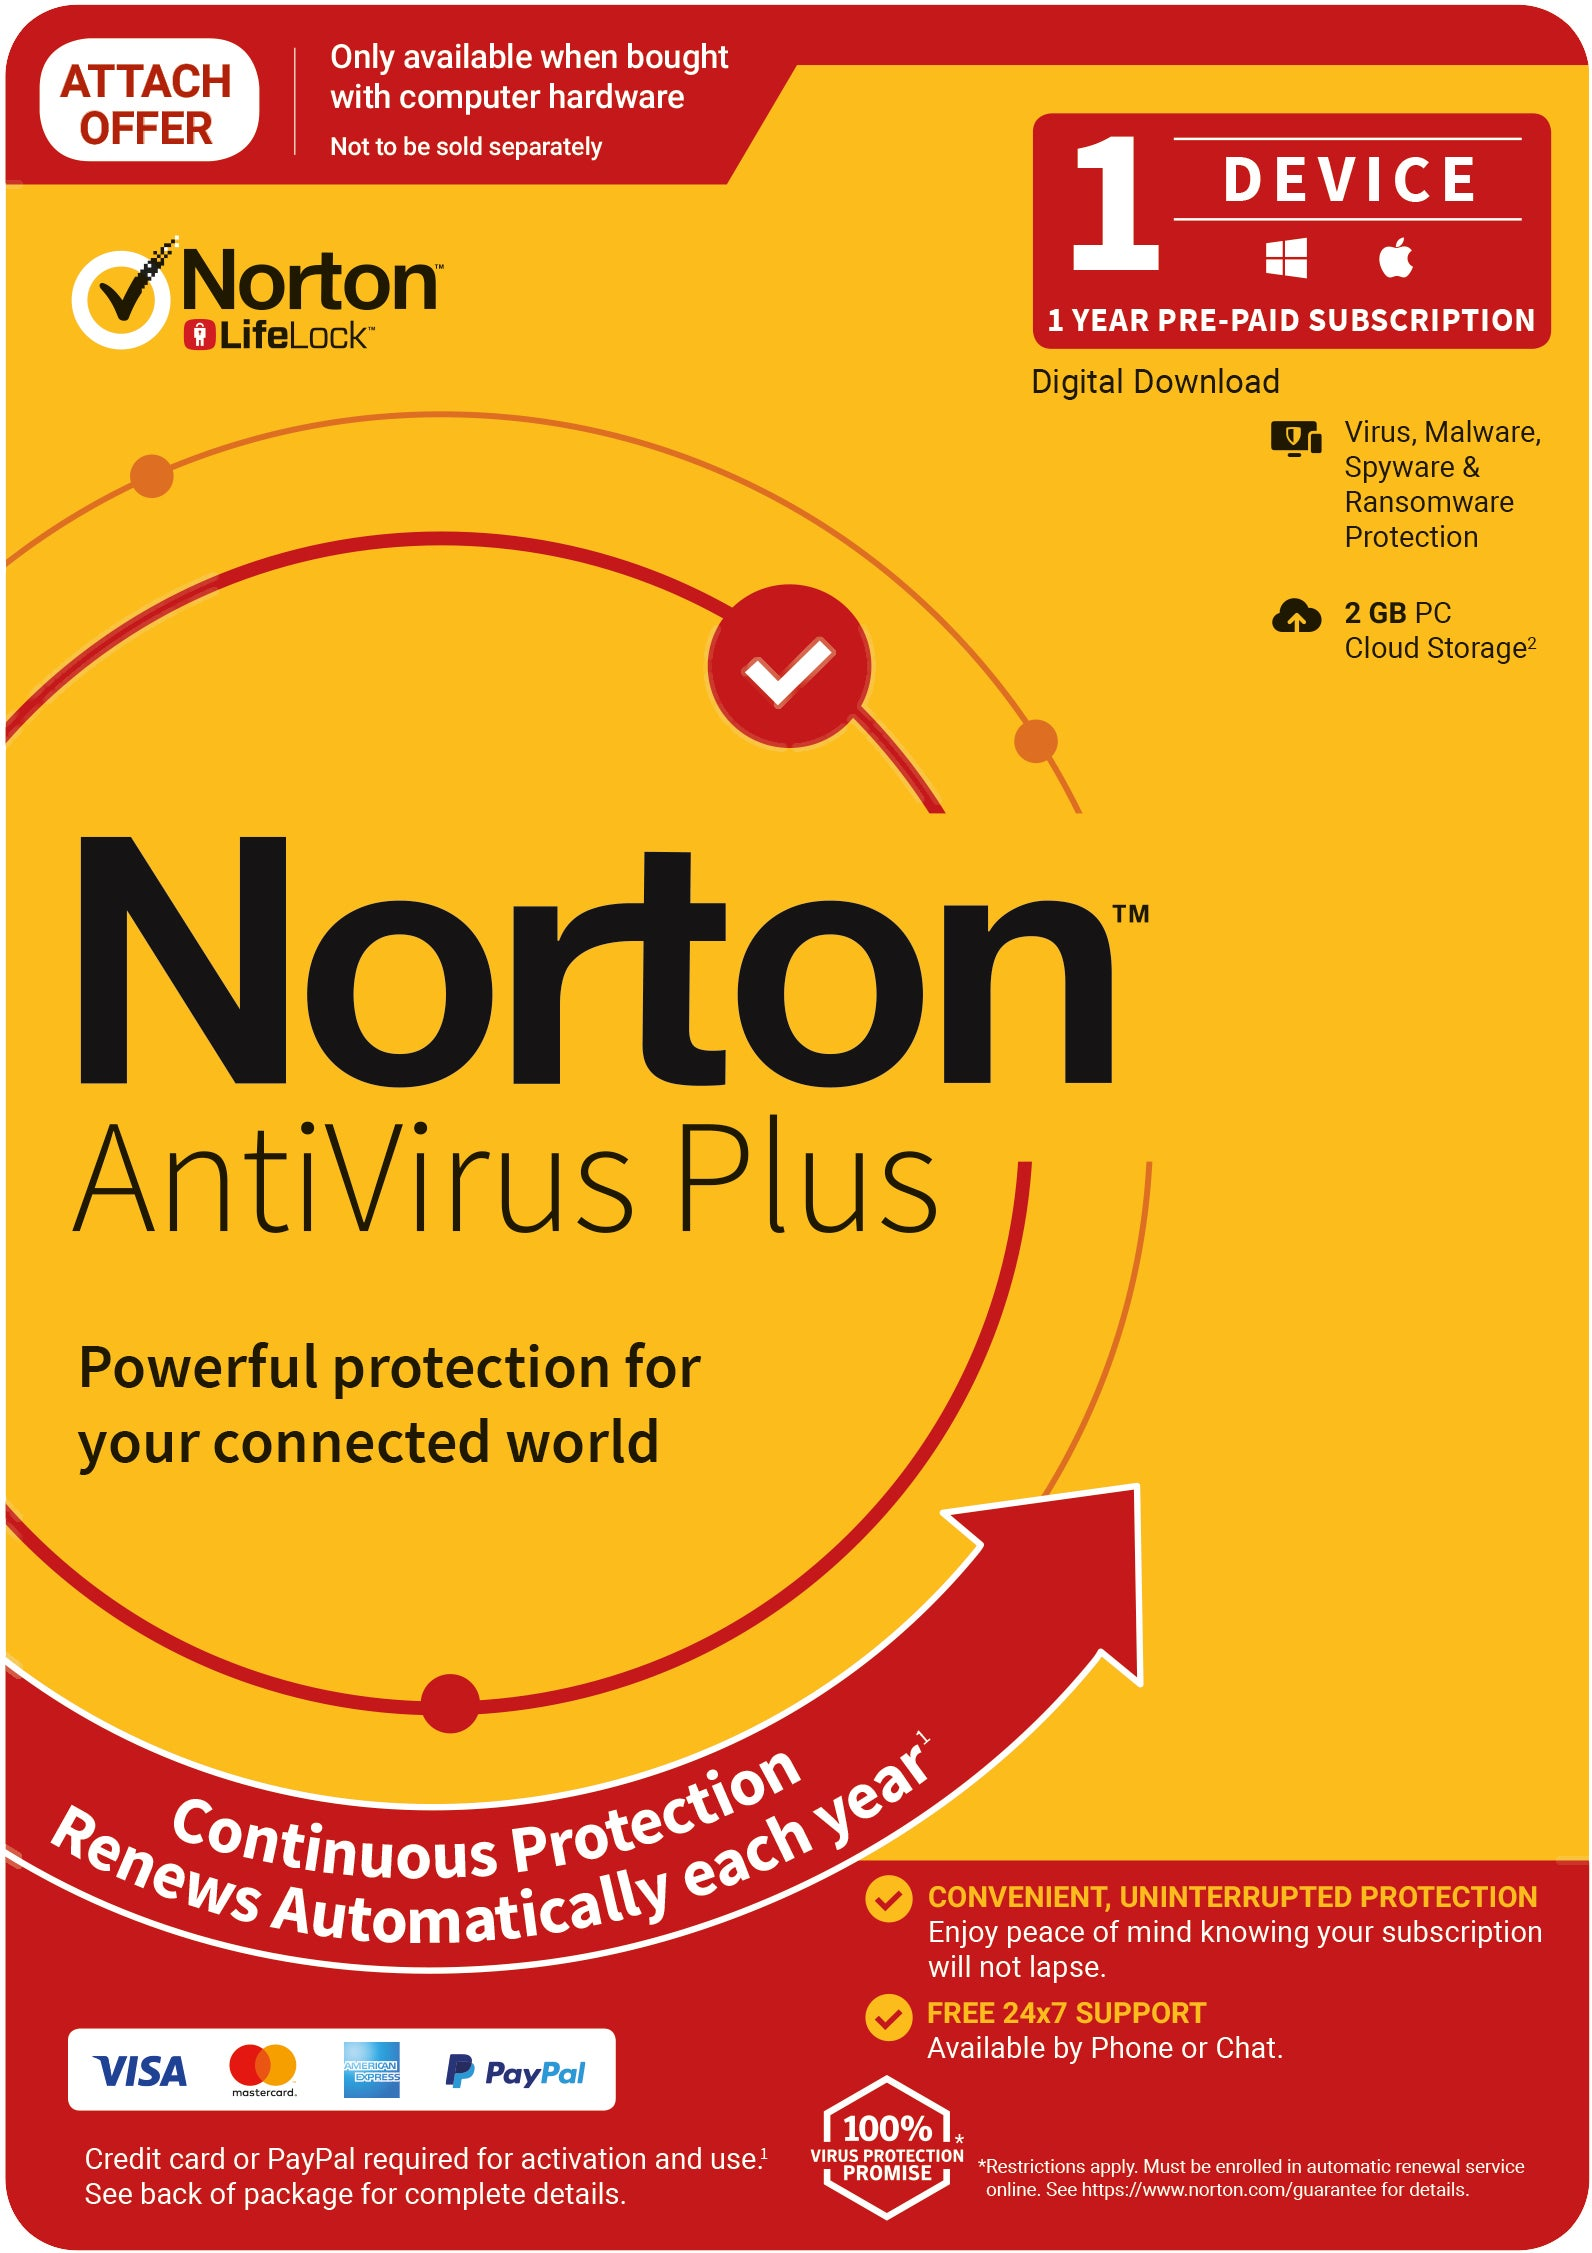 NORTON Anti Virus Plus 2020, 2GB, 1 User, 1 Devices, 12 Months, PC, MAC, Android, iOS, DVD, Subscription